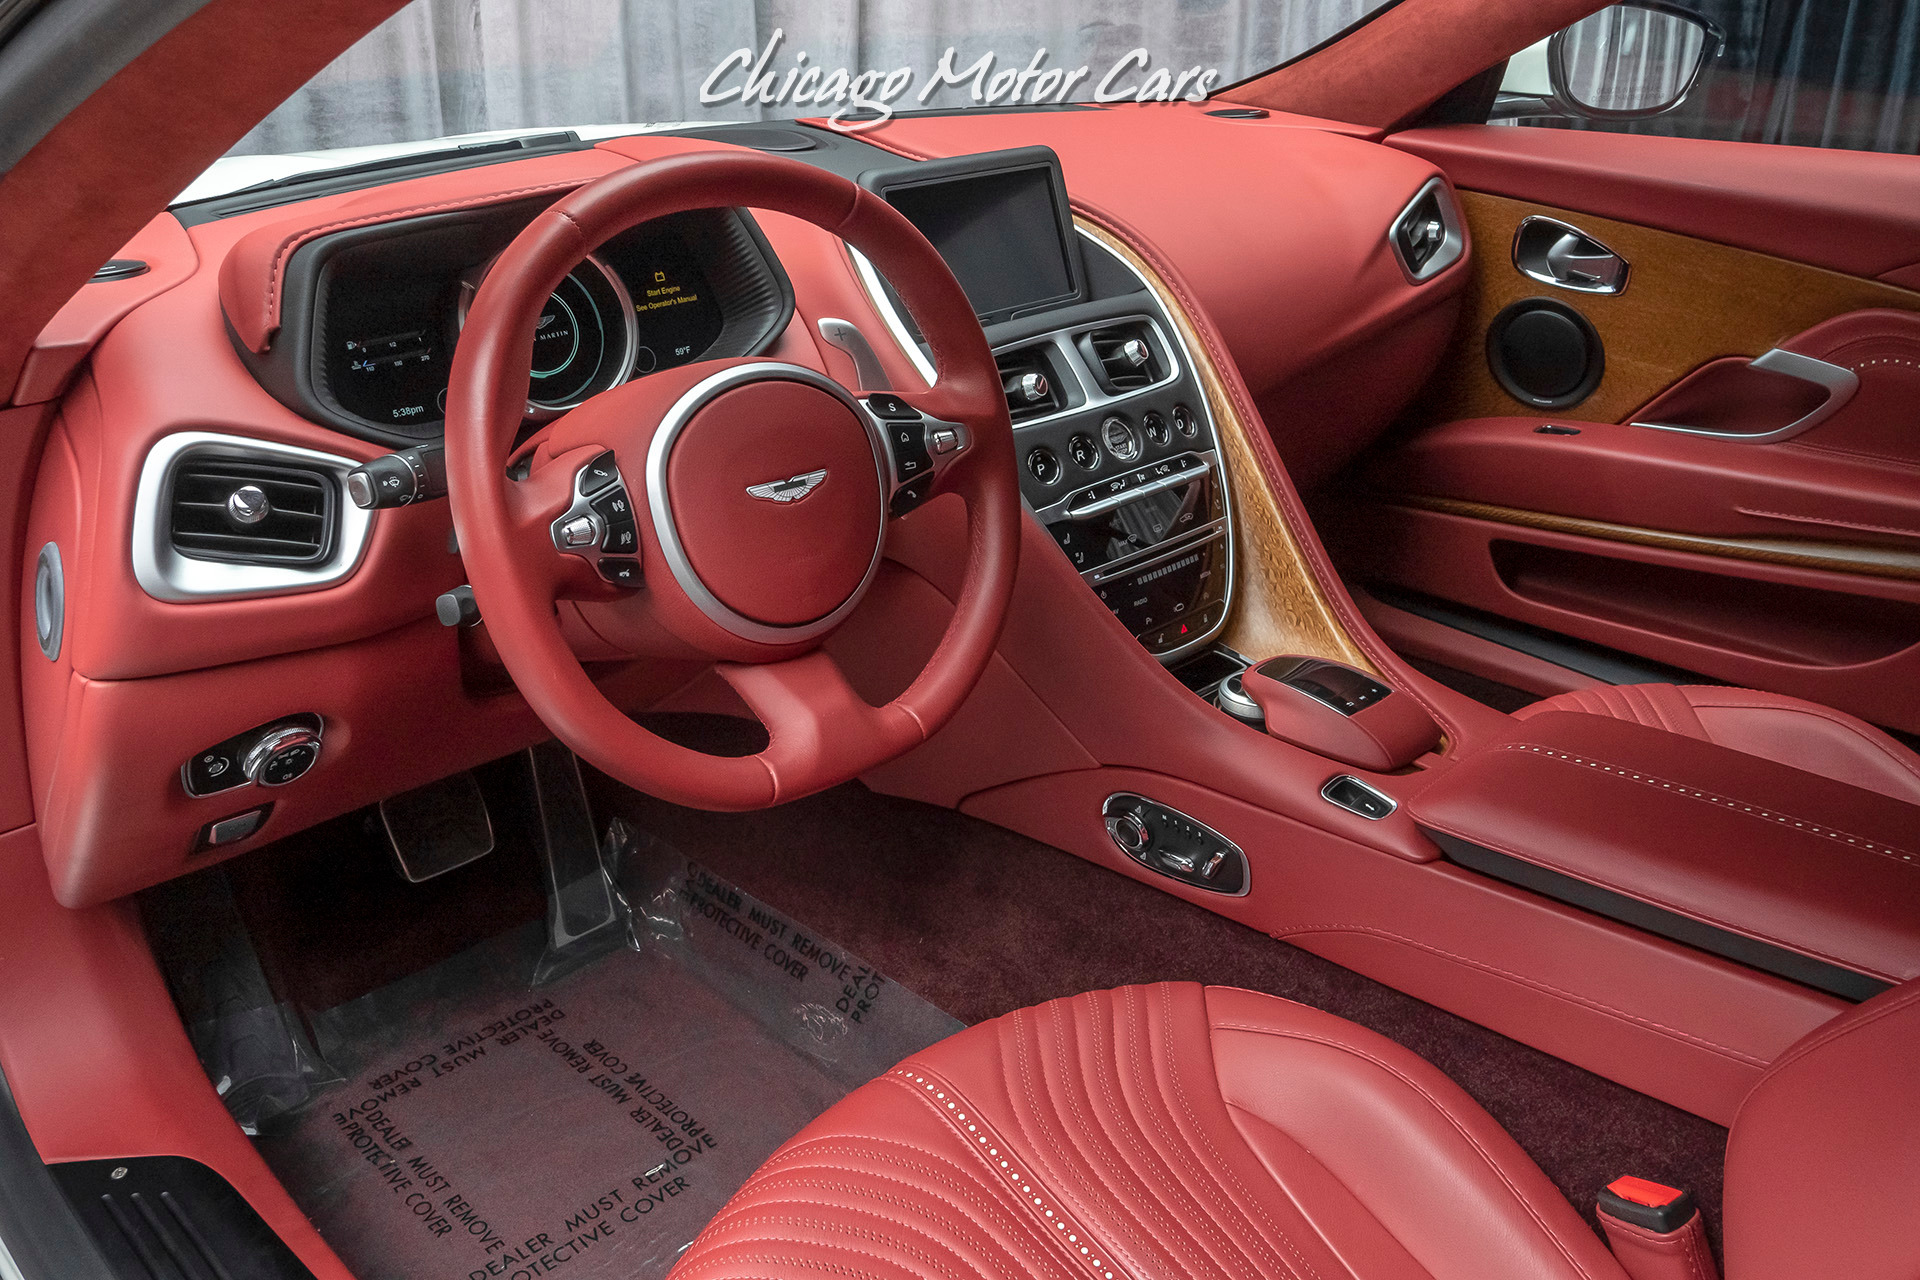 Used 2017 Aston Martin Db11 V12 Coupe Loaded With Options Technology Pack For Sale Special Pricing Chicago Motor Cars Stock 16905b